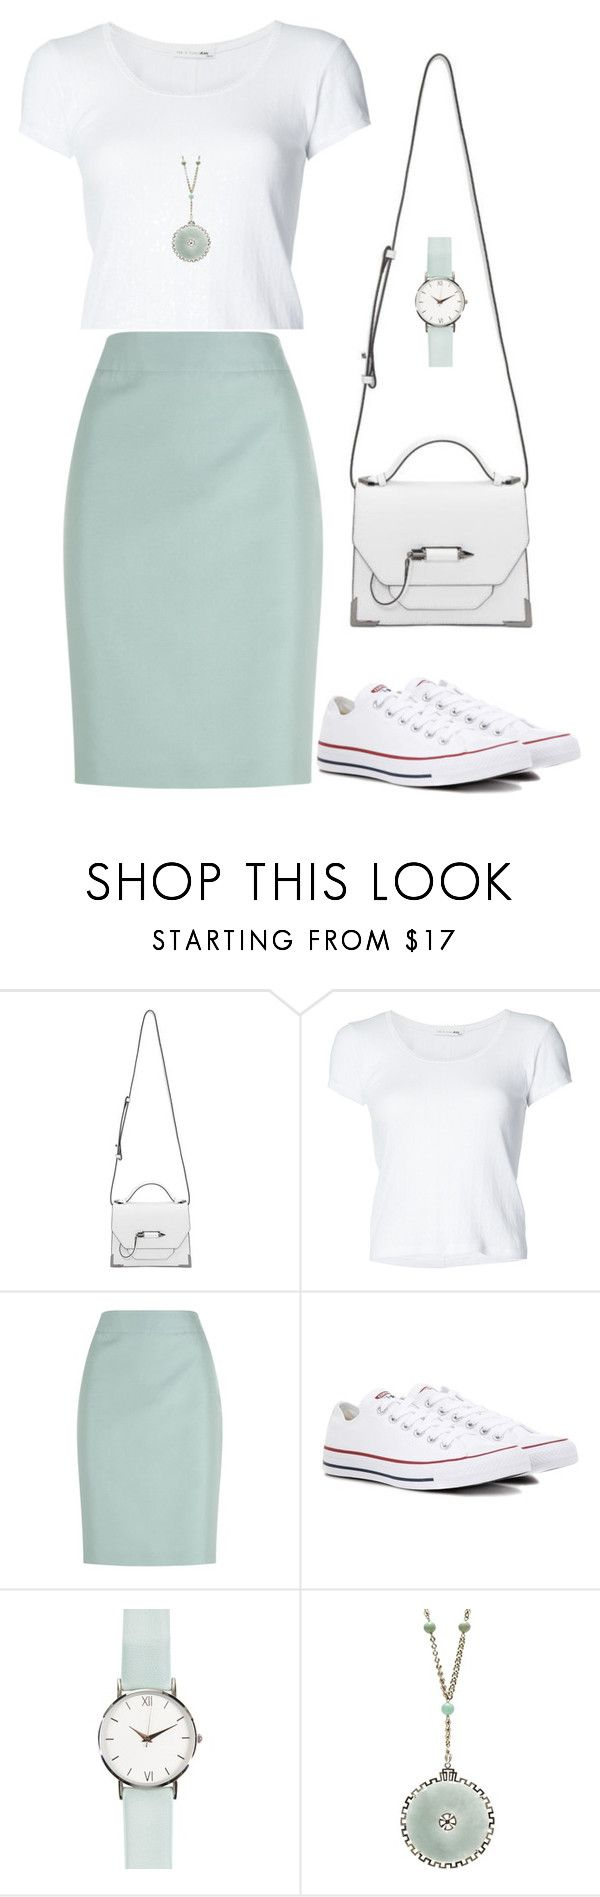 """""""Green tea latte"""" by indirareeves on Polyvore featuring Mackage, rag & bone, Armani Collezioni and Converse"""